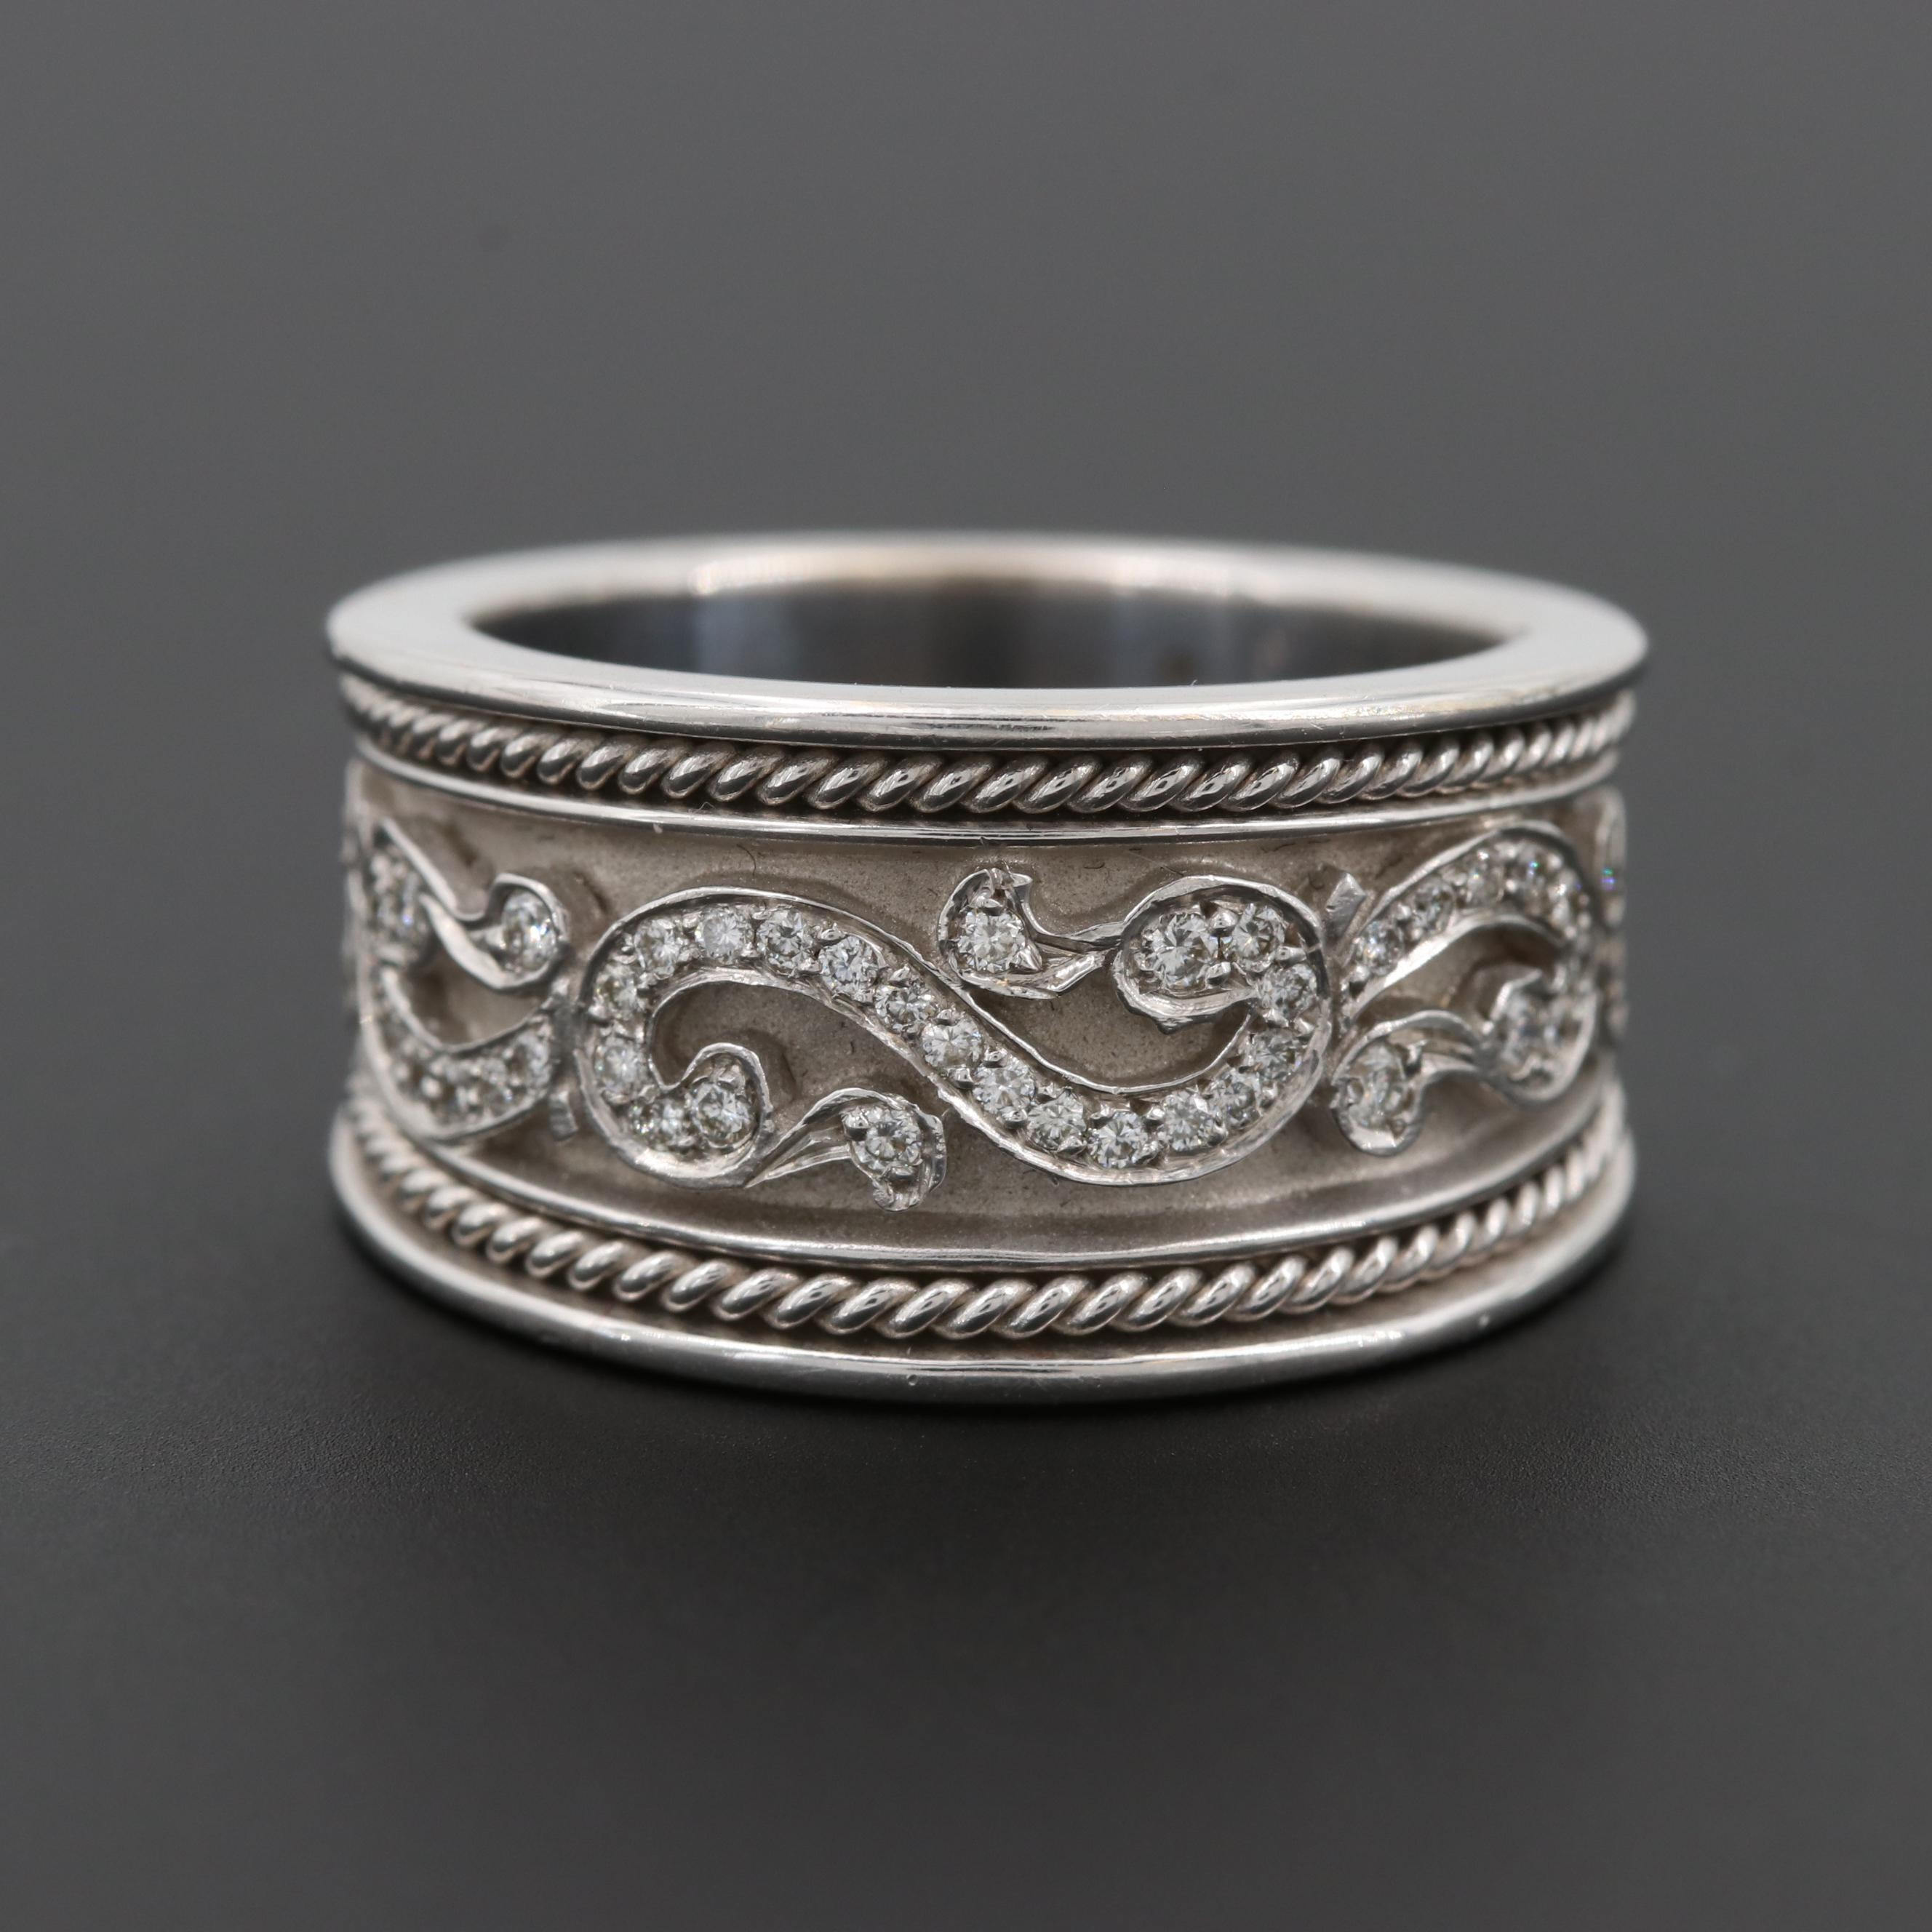 18K White Gold Diamond Tapered Band with Scroll Work and Twisted Wire